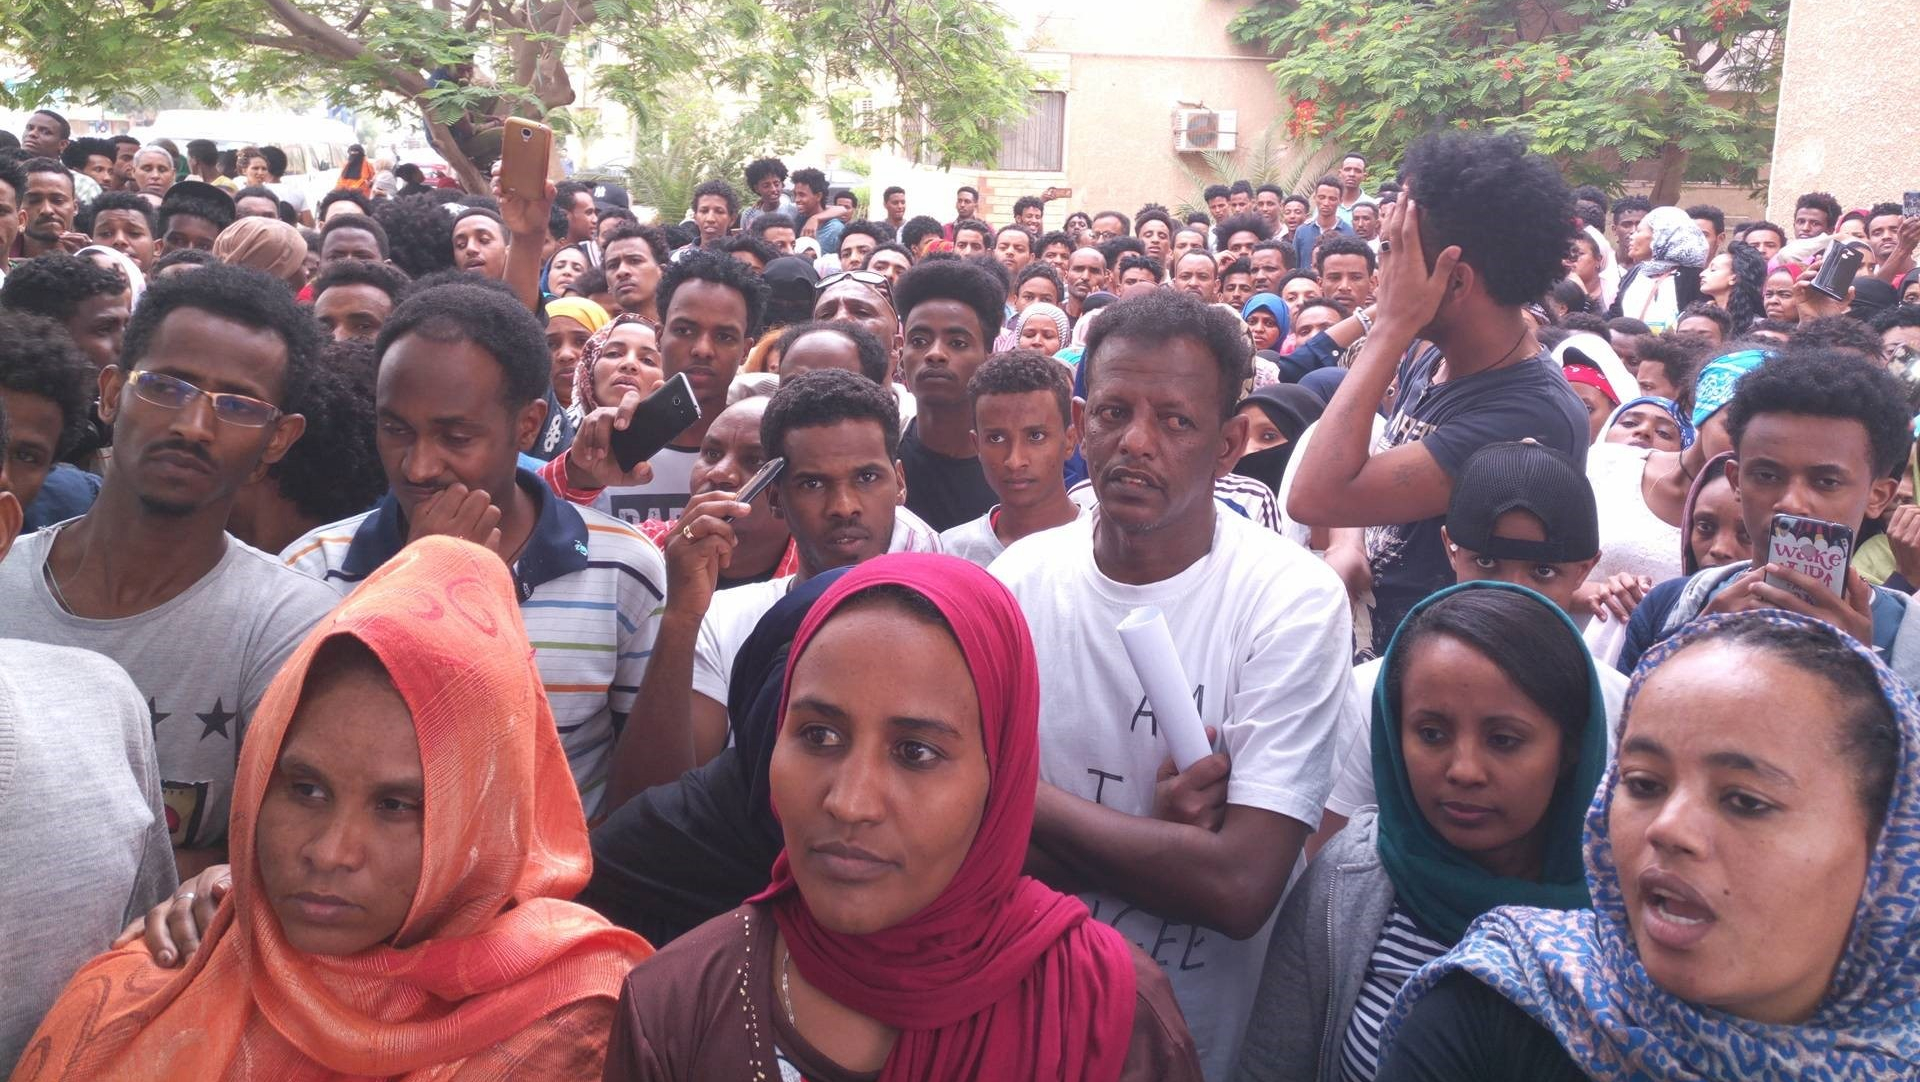 Eritreans demonstrating in Cairo, 2018